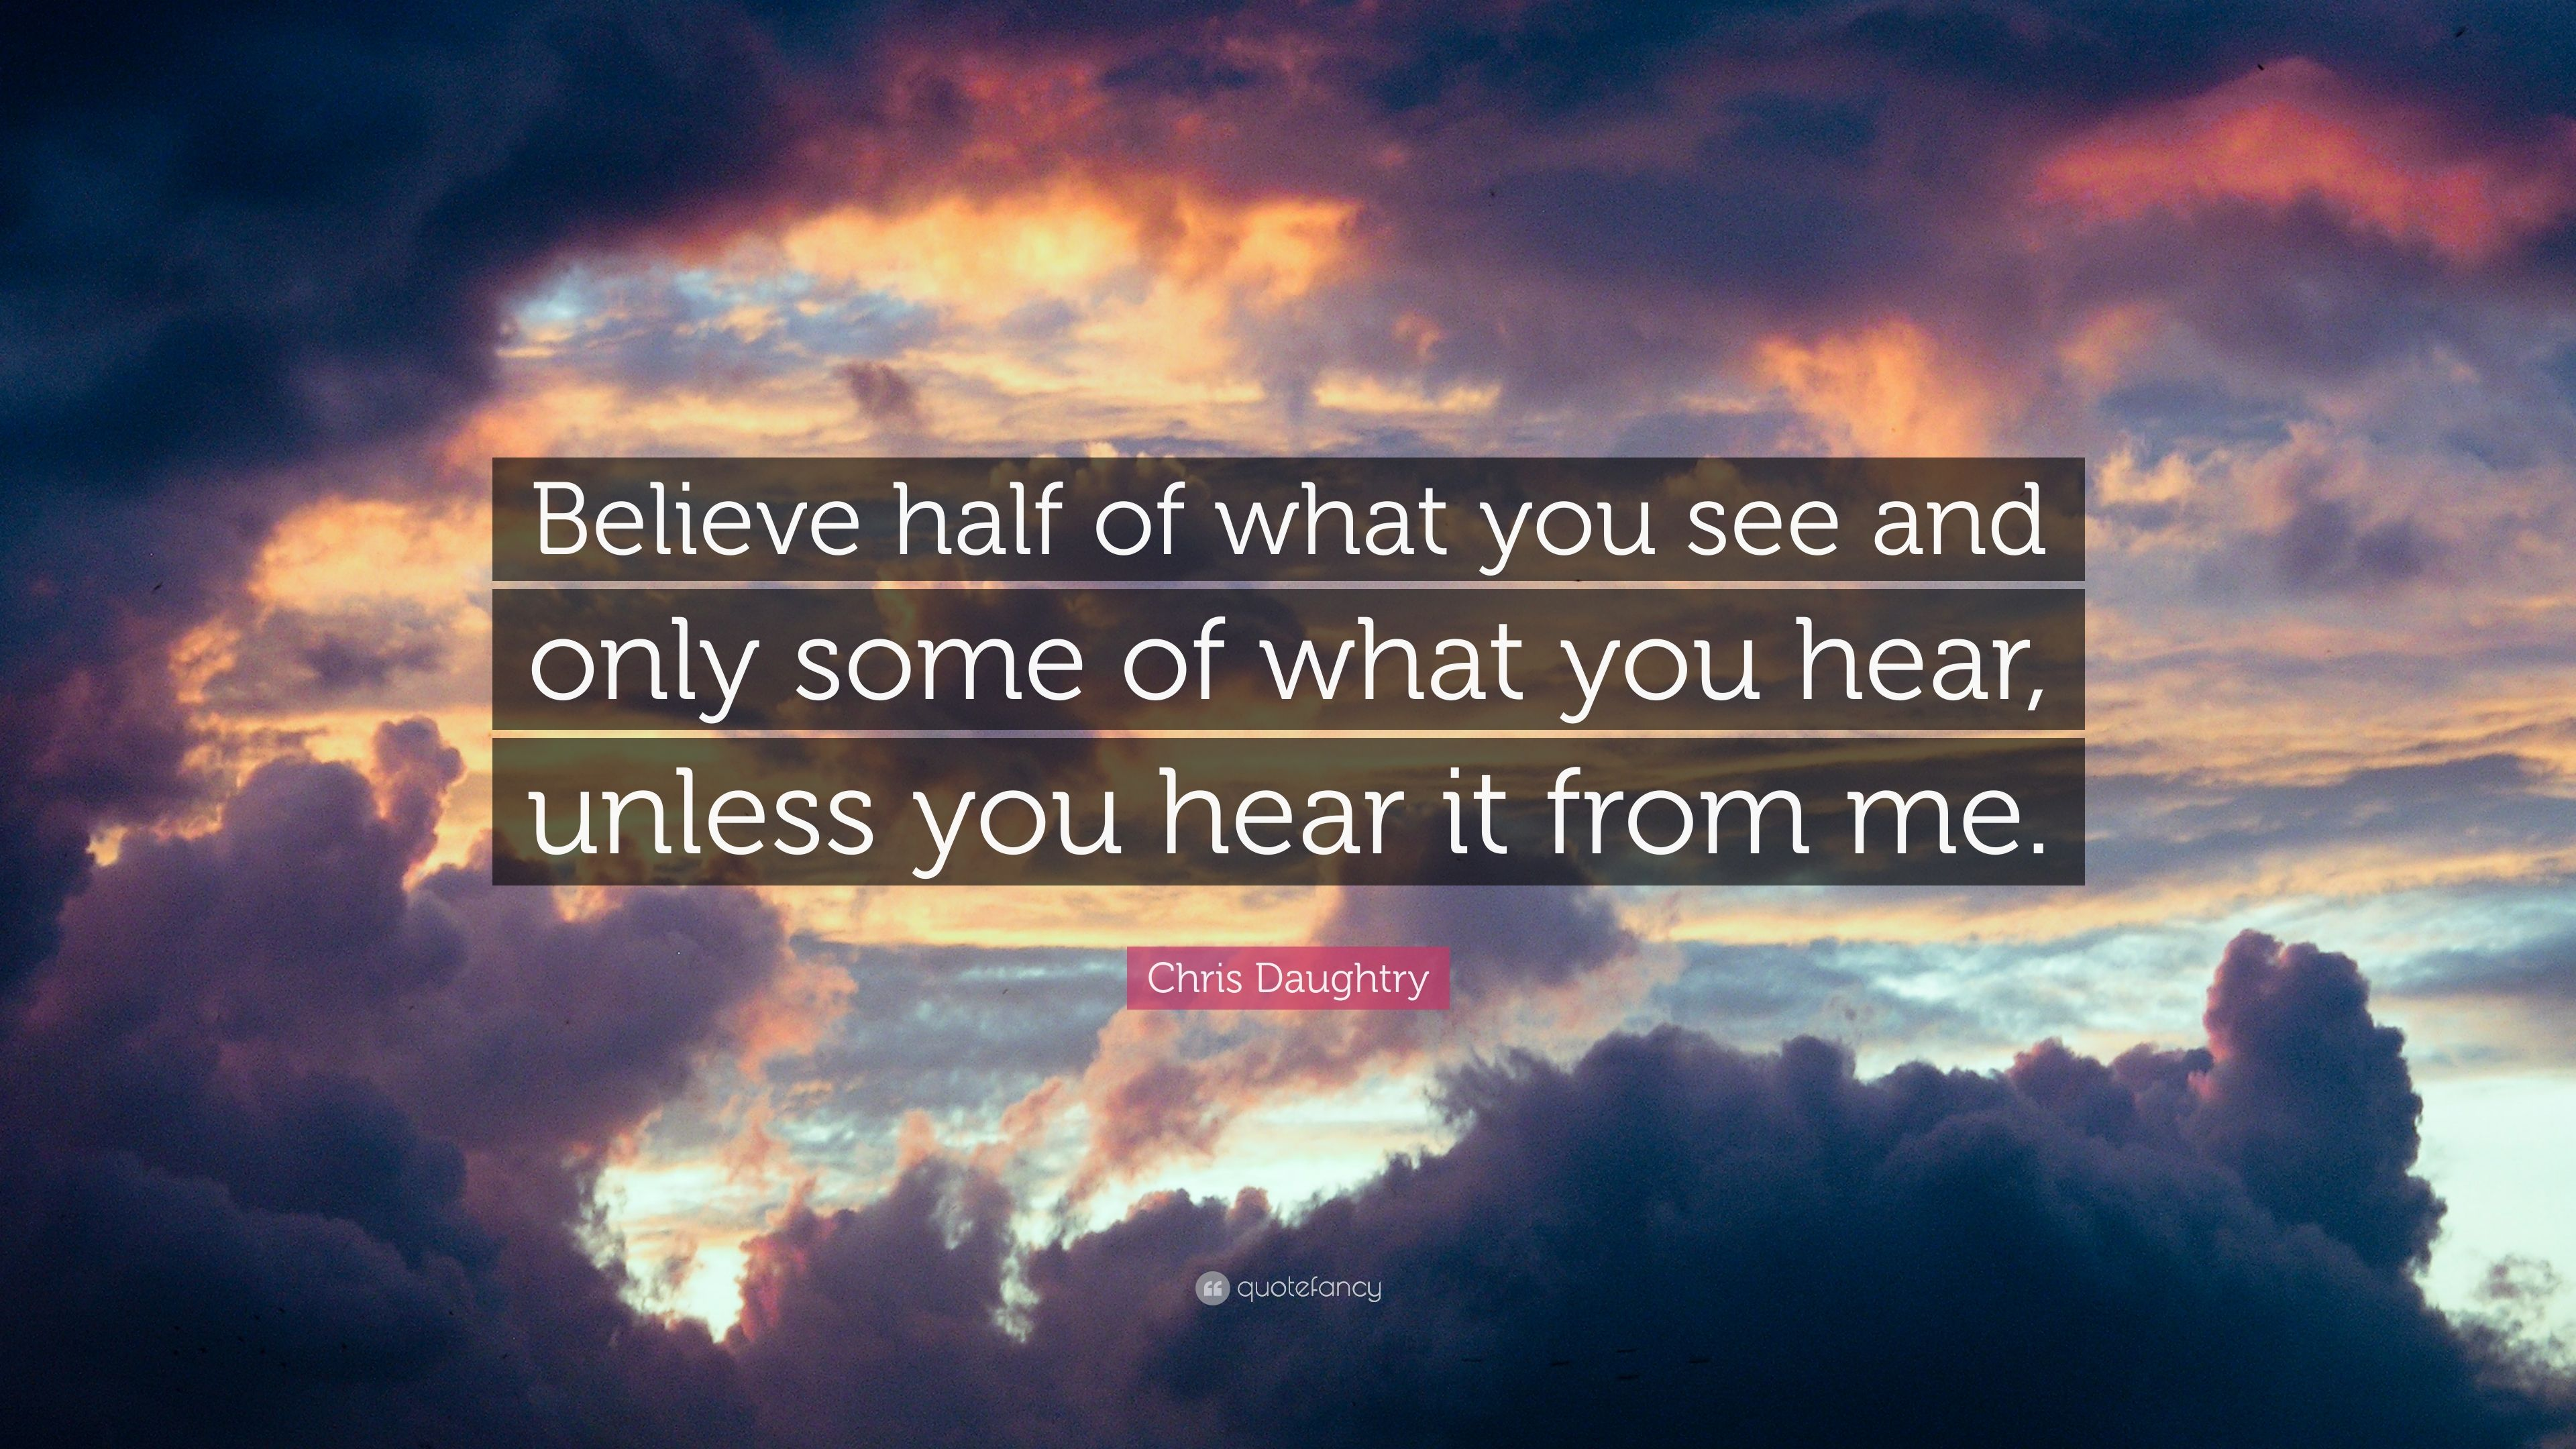 Chris Daughtry Quote Believe Half Of What You See And Only Some Of